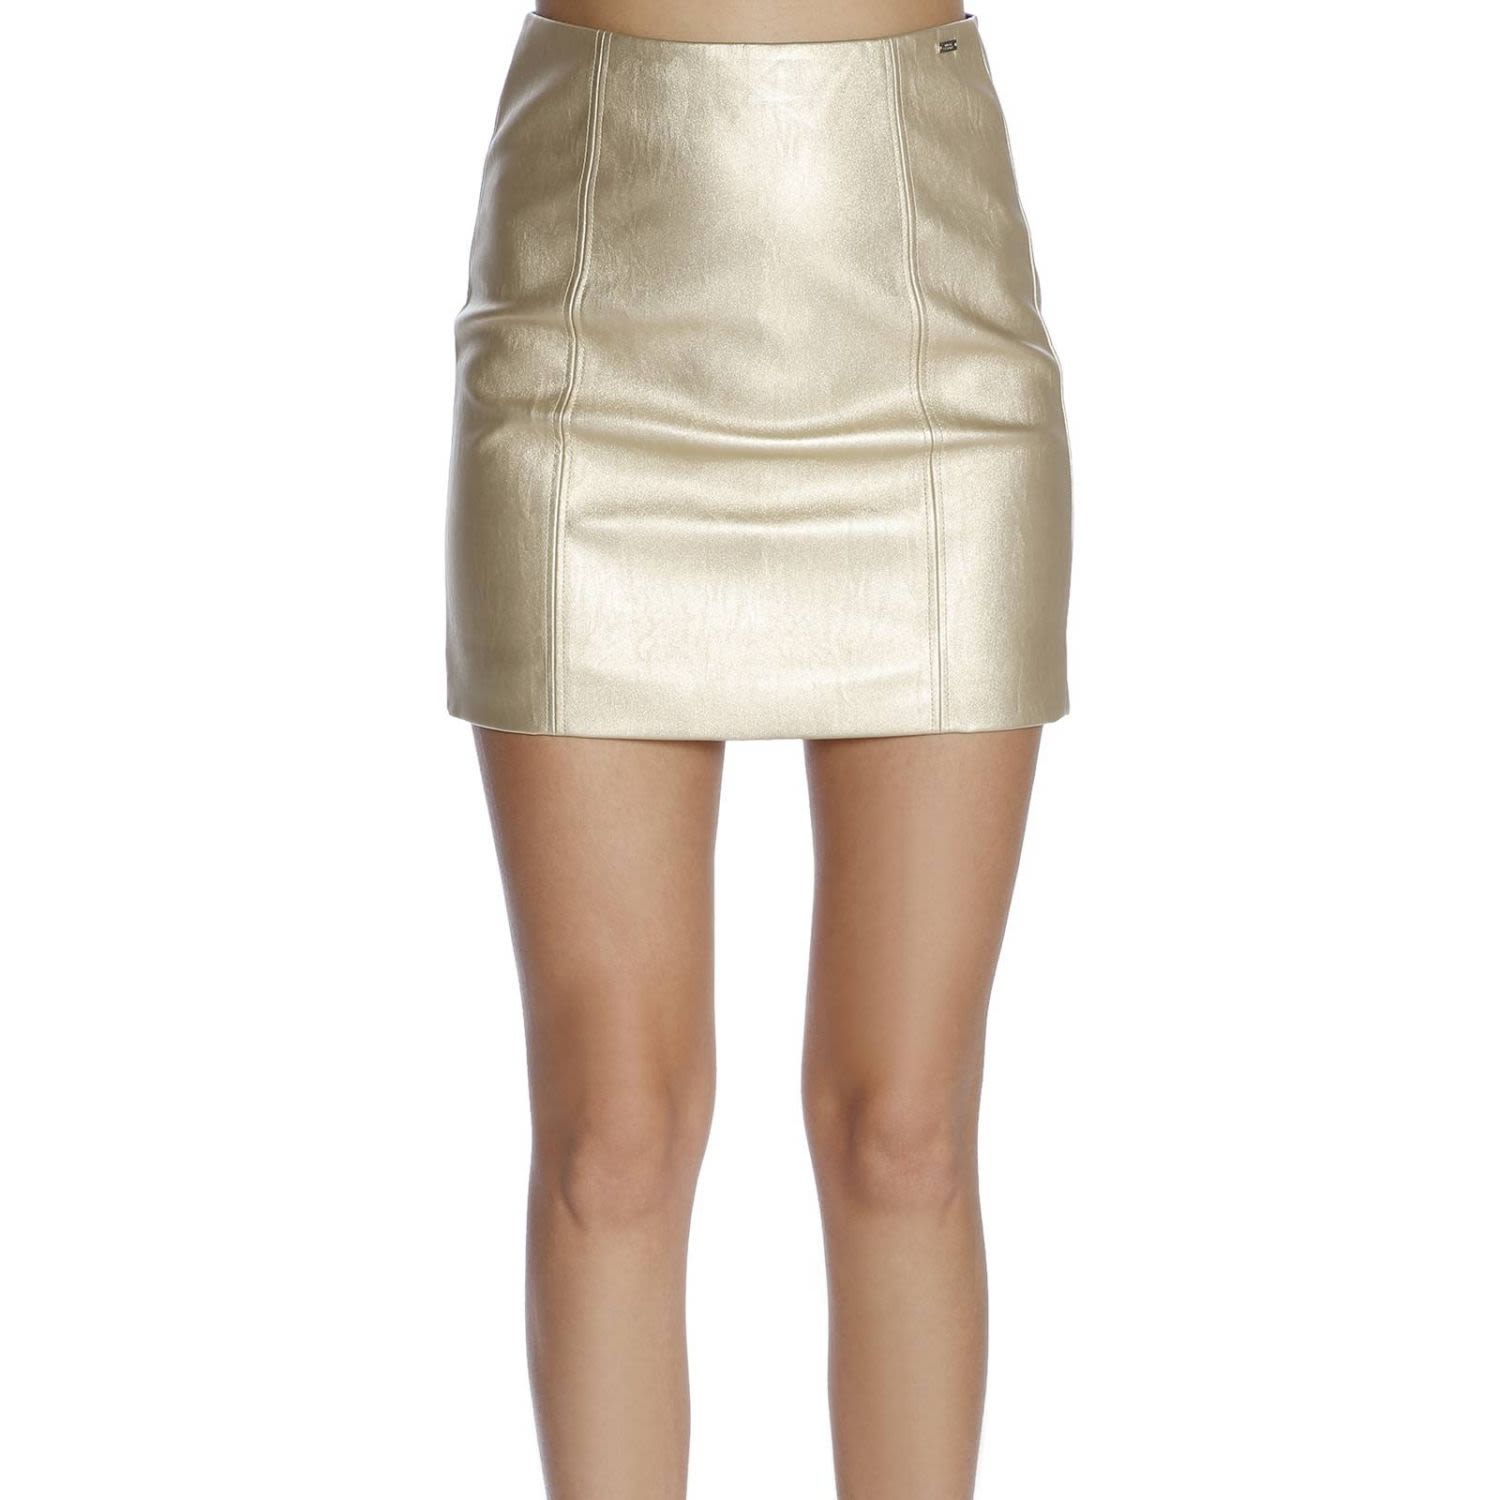 armani collezioni - Armani Exchange Skirt Skirt Women Armani Exchange